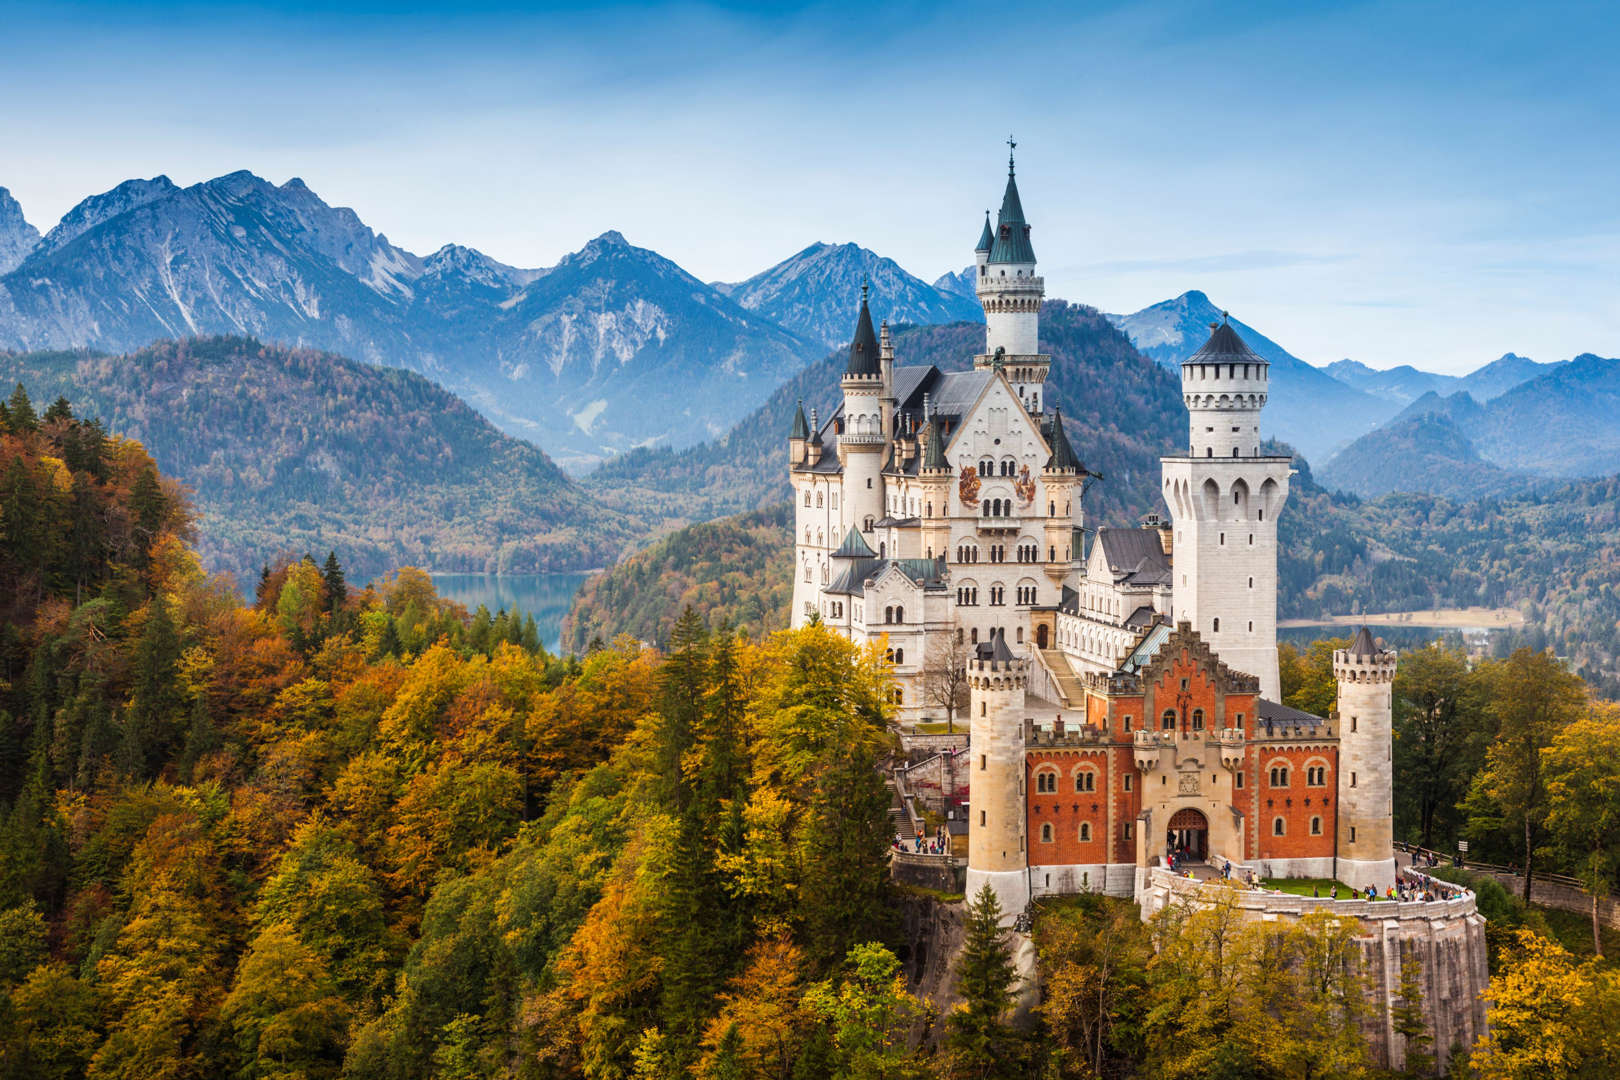 899ccc0a3dc1 100 must-see landmarks from around the world